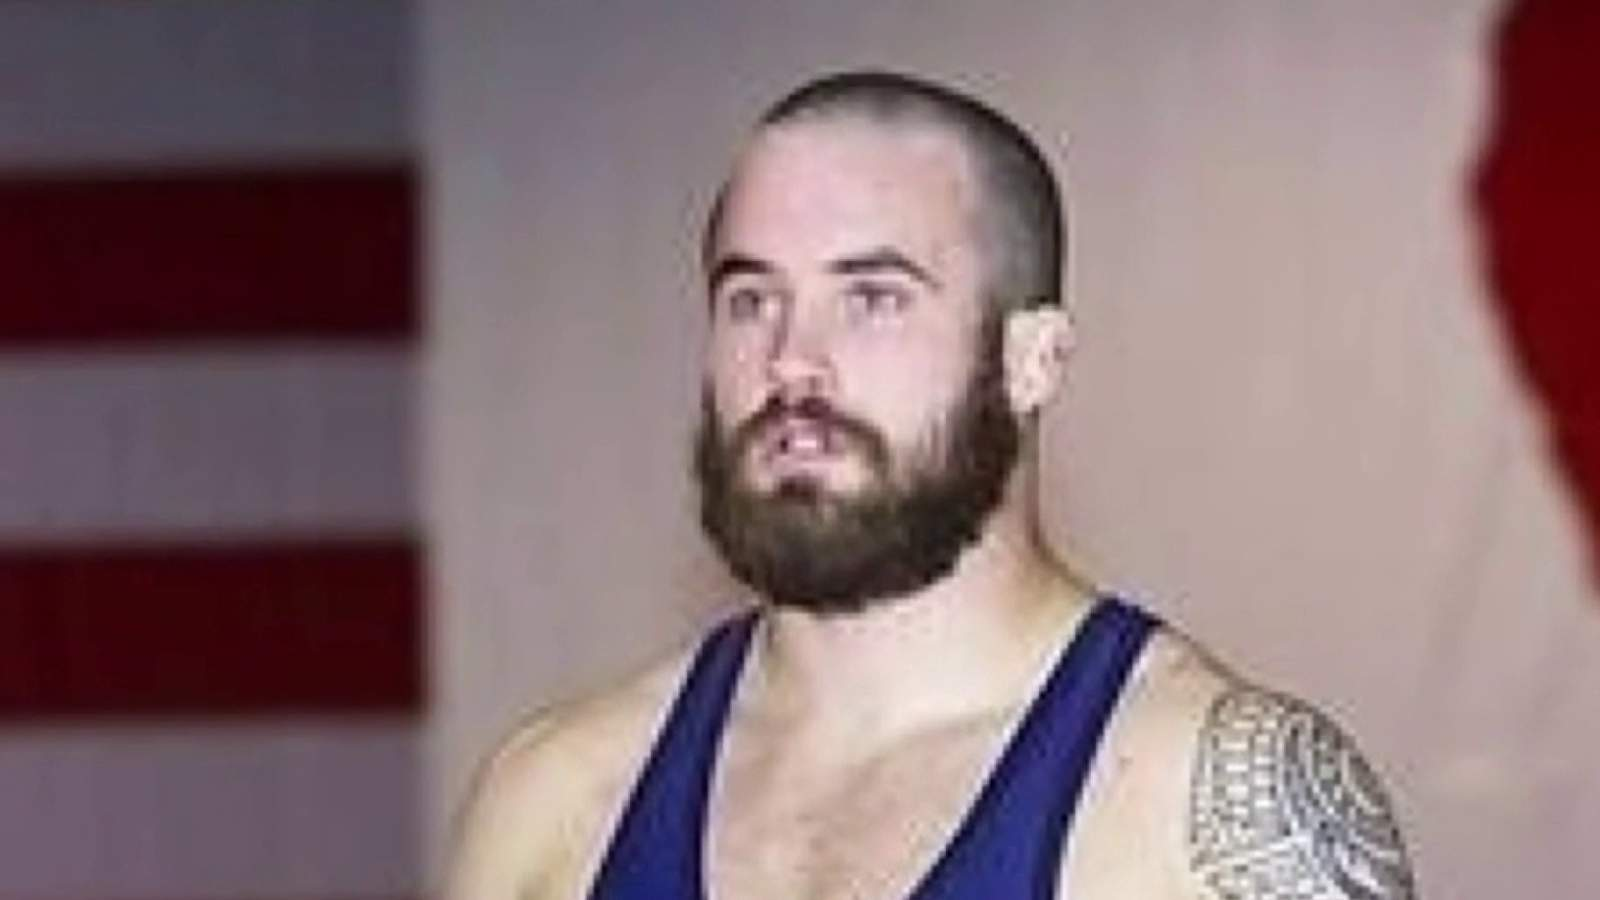 Olympic wrestler says former University of Michigan doctor touched him inappropriately